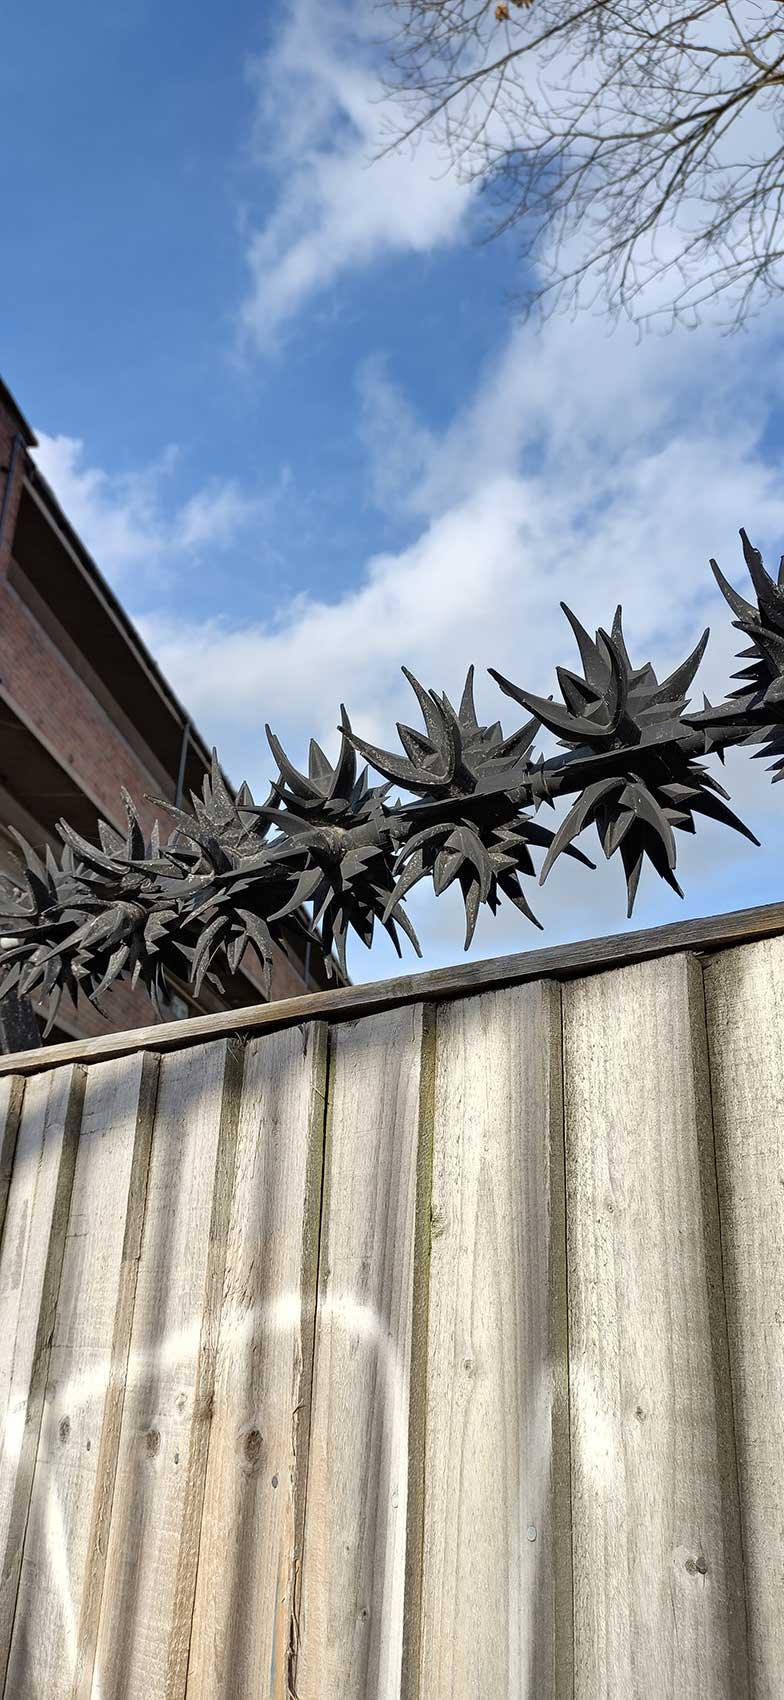 anti climb spikes on top of wooden fence